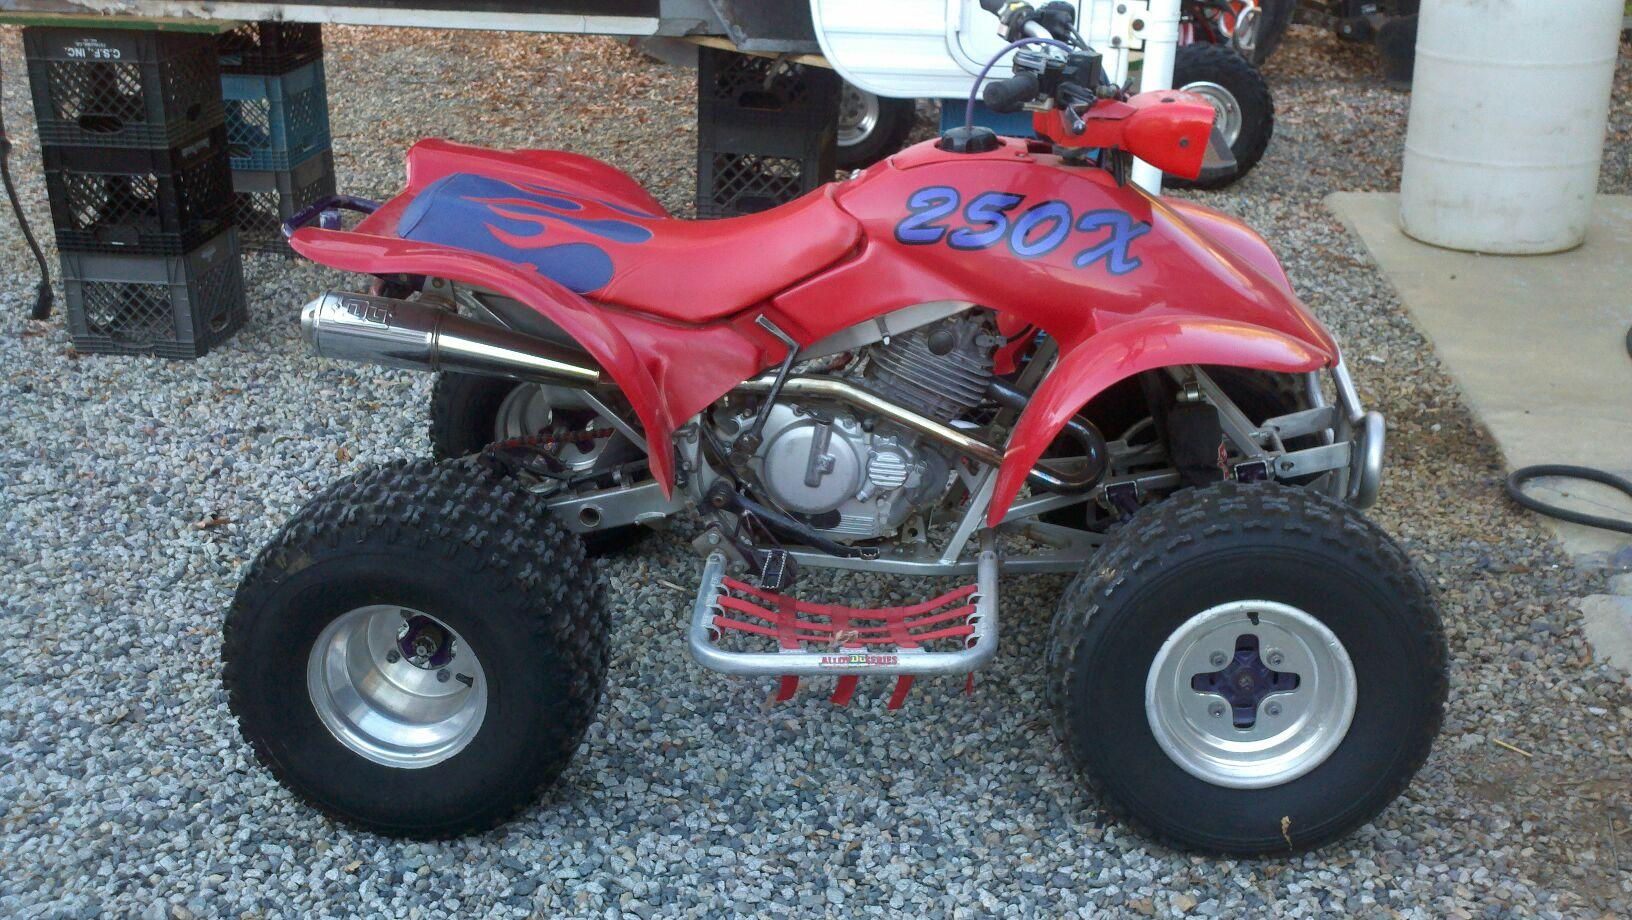 87 Honda 250X - ATV's/ Motorcycles for sale - Dumont Dune Riders